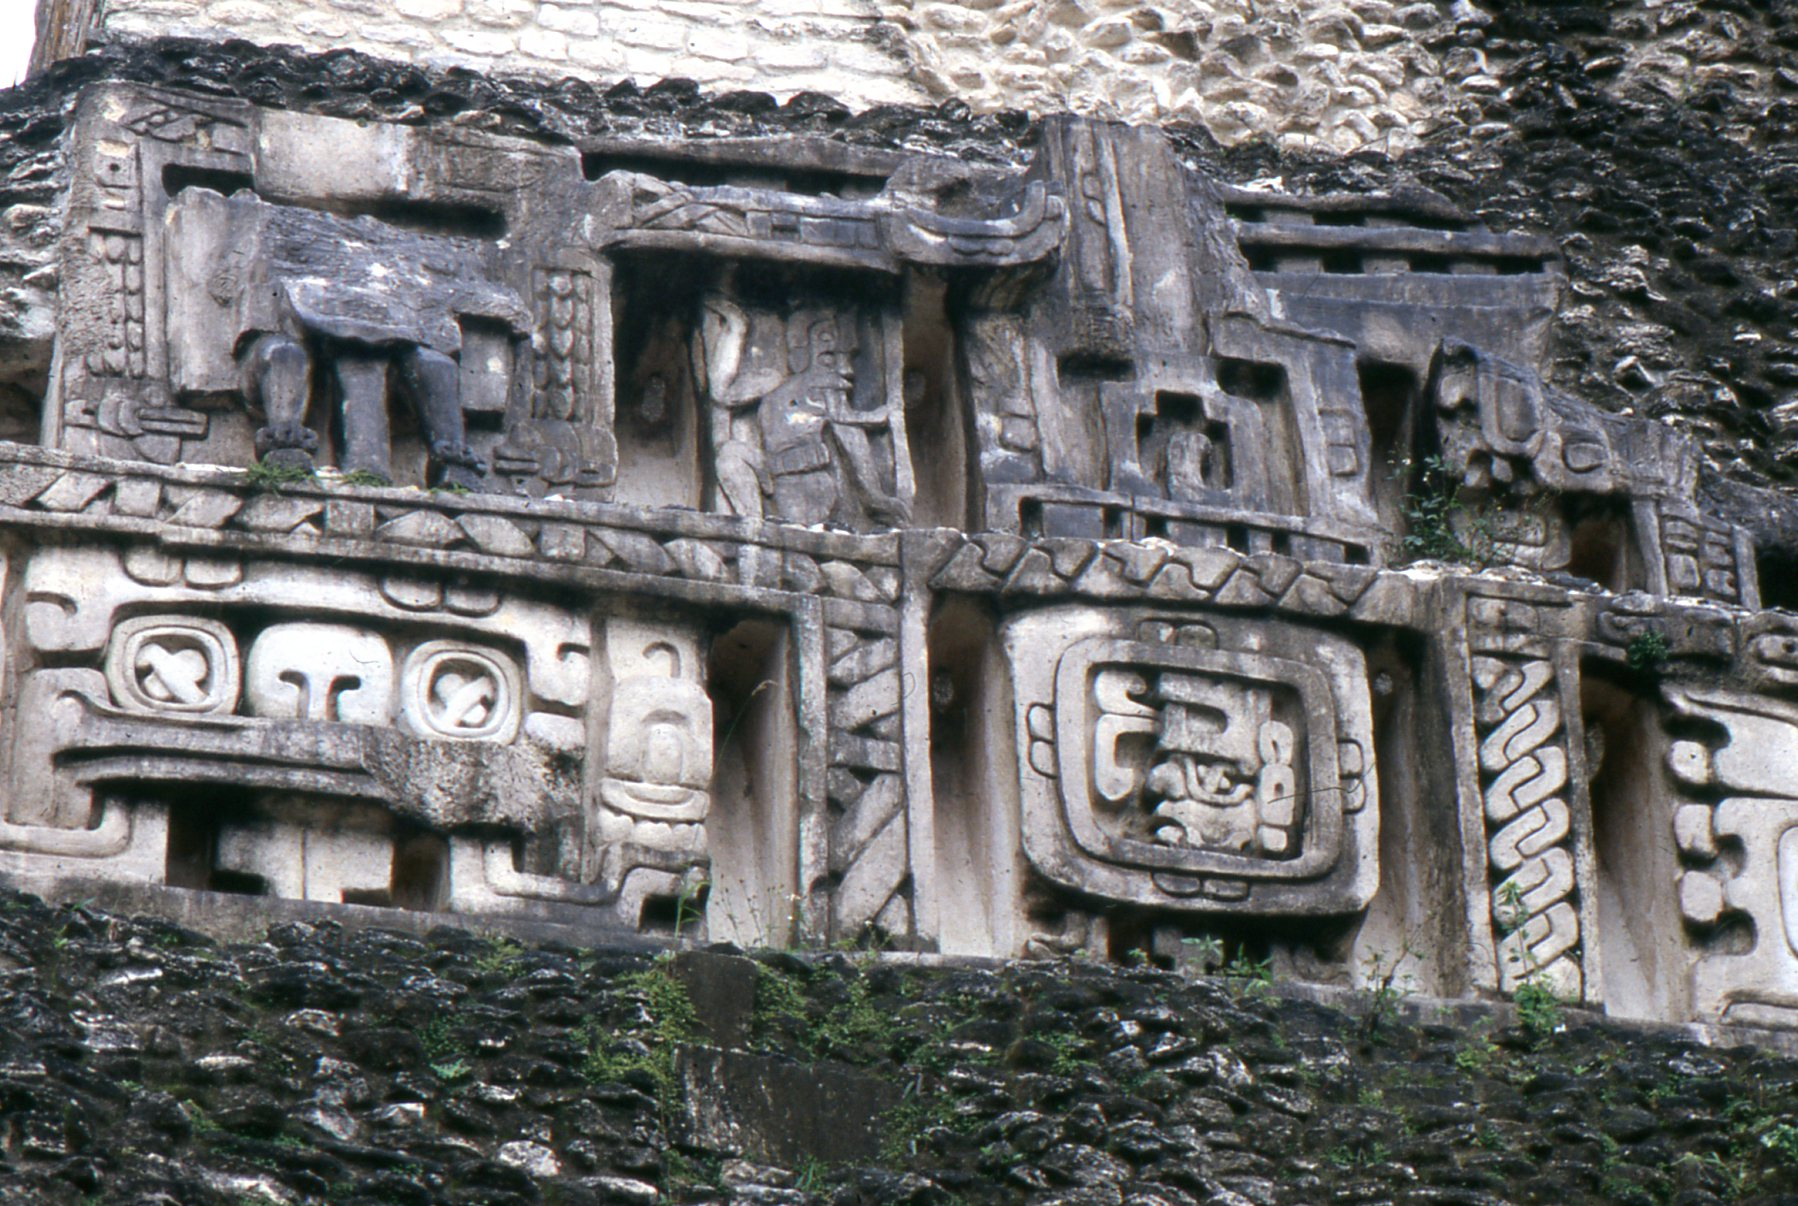 The Mayan-built stone temple of El Castillo at Xunantunich has lasted nearly 2,000 years. Its heiroglyphs are still only partially translated.